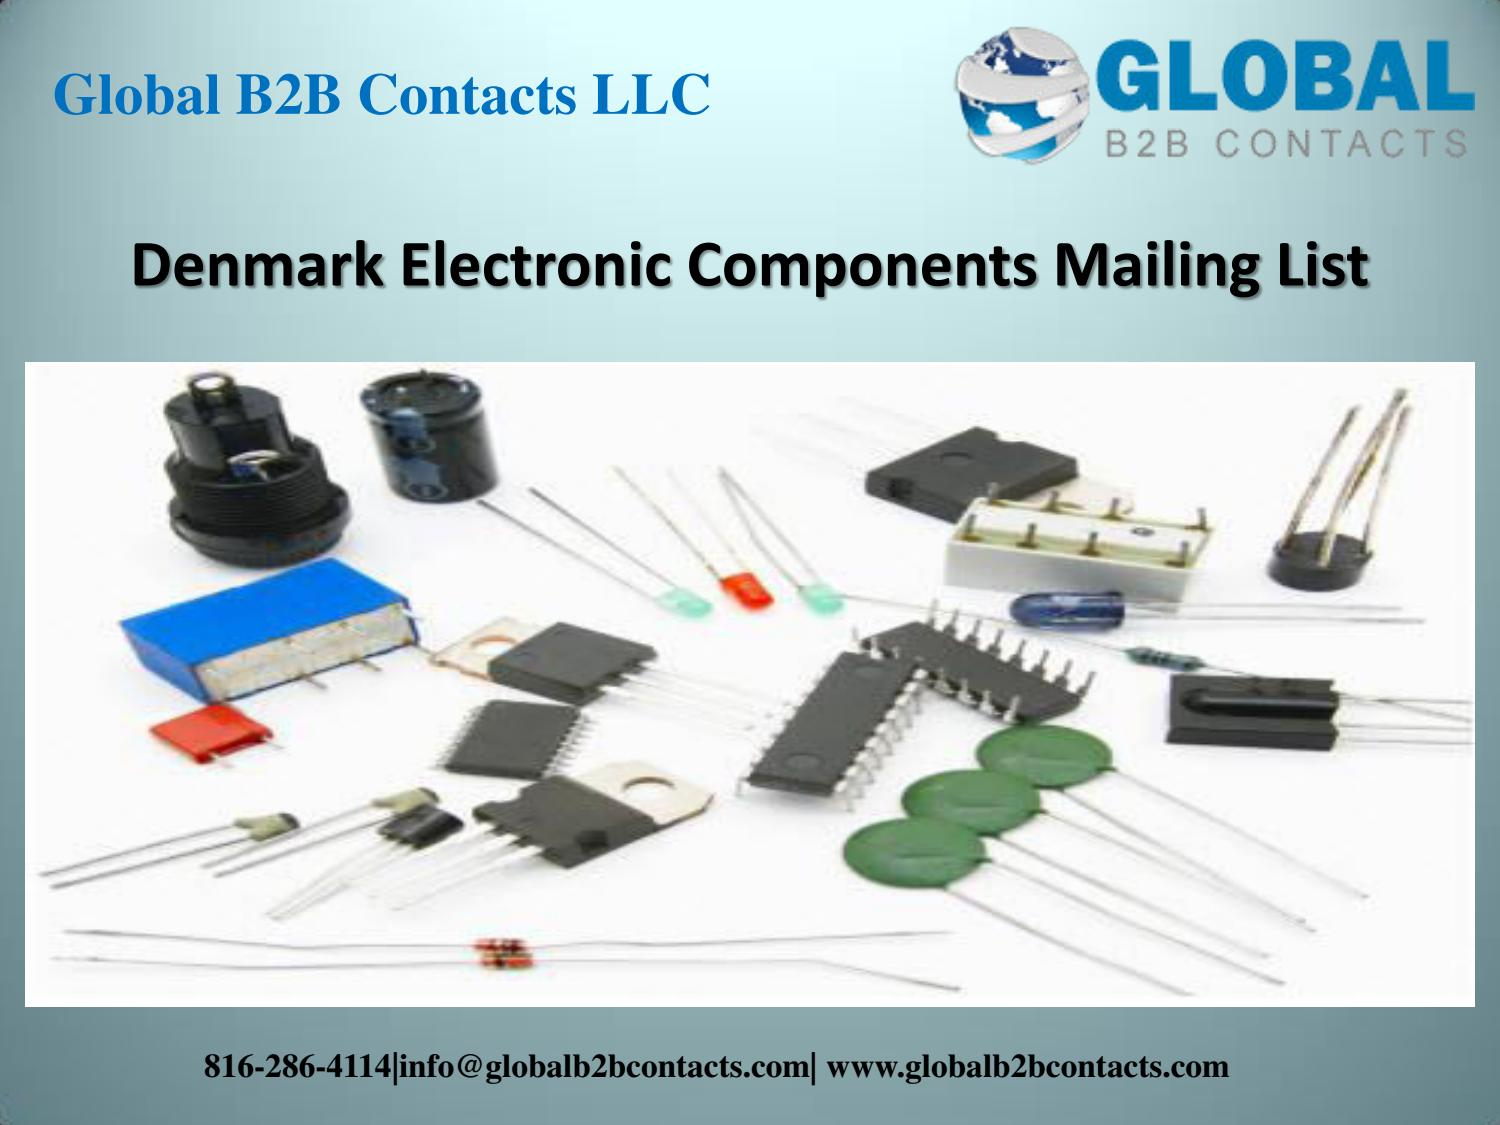 Denmark electronic components mailing list by lara ruth - issuu